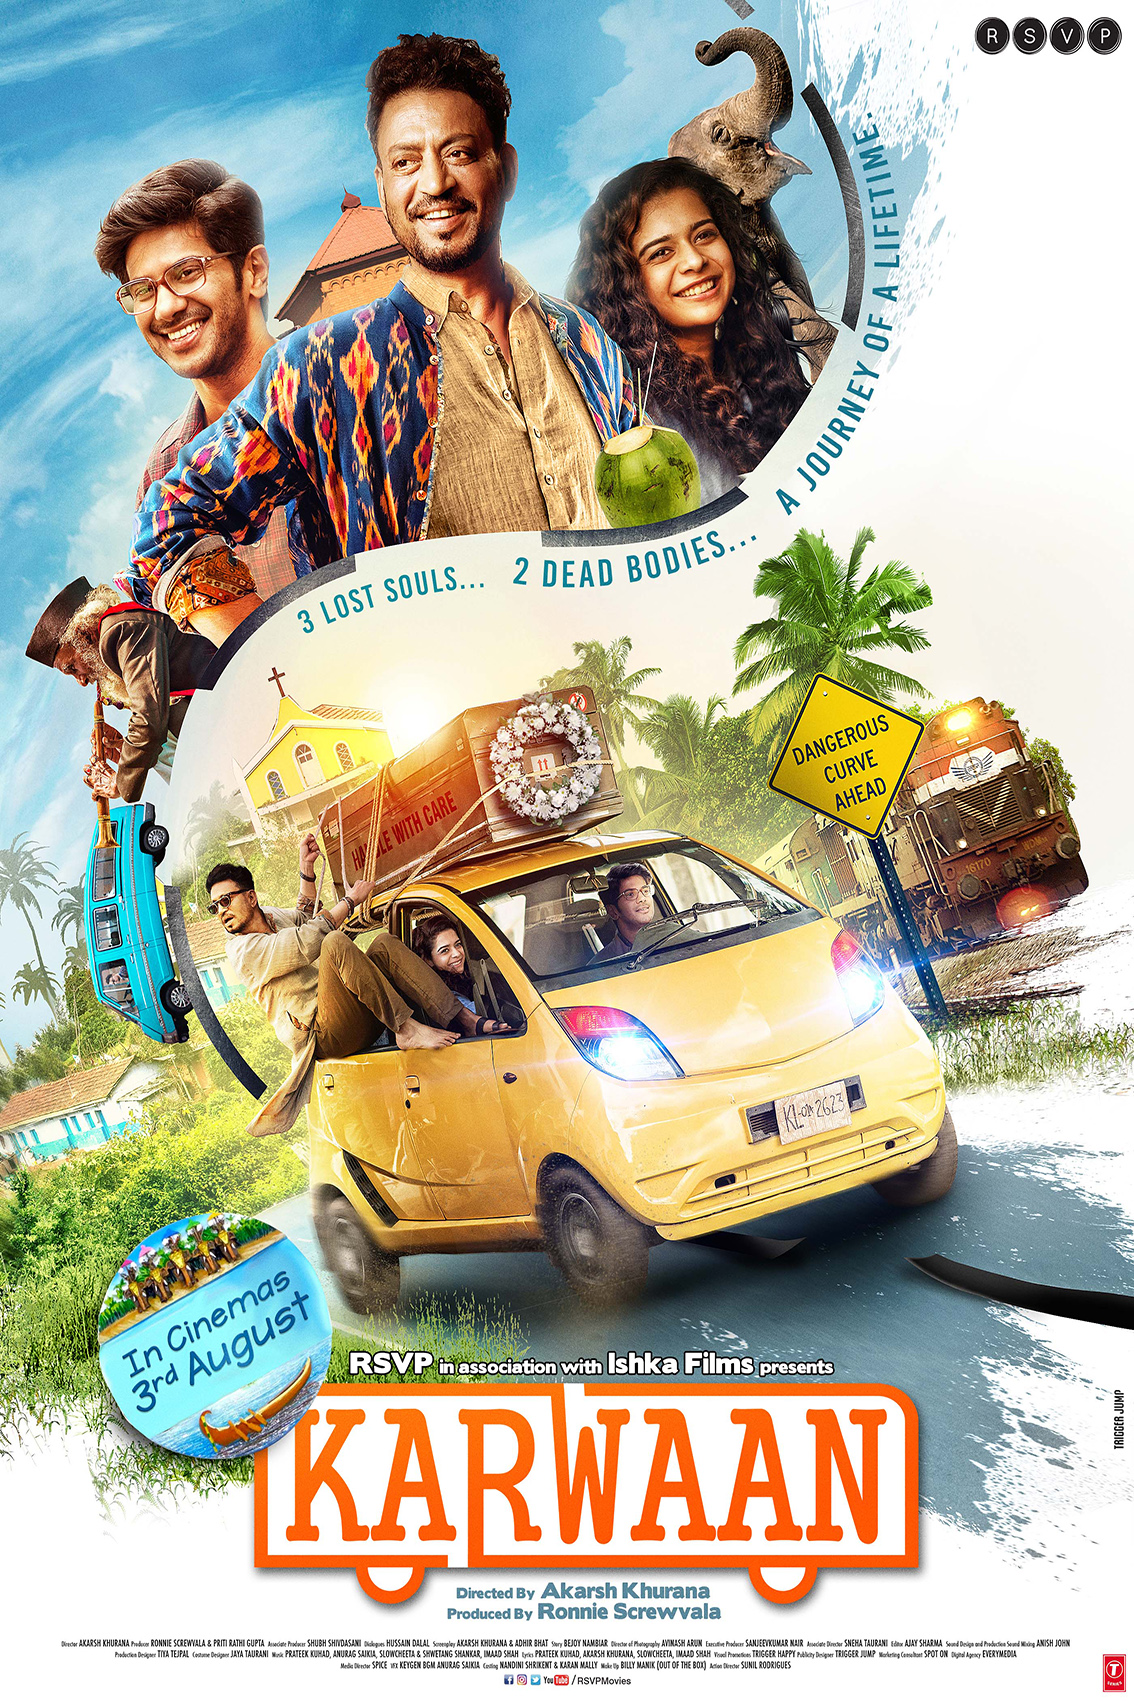 Karwaan [2018 India Movie] Hindi, Comedy, Drama